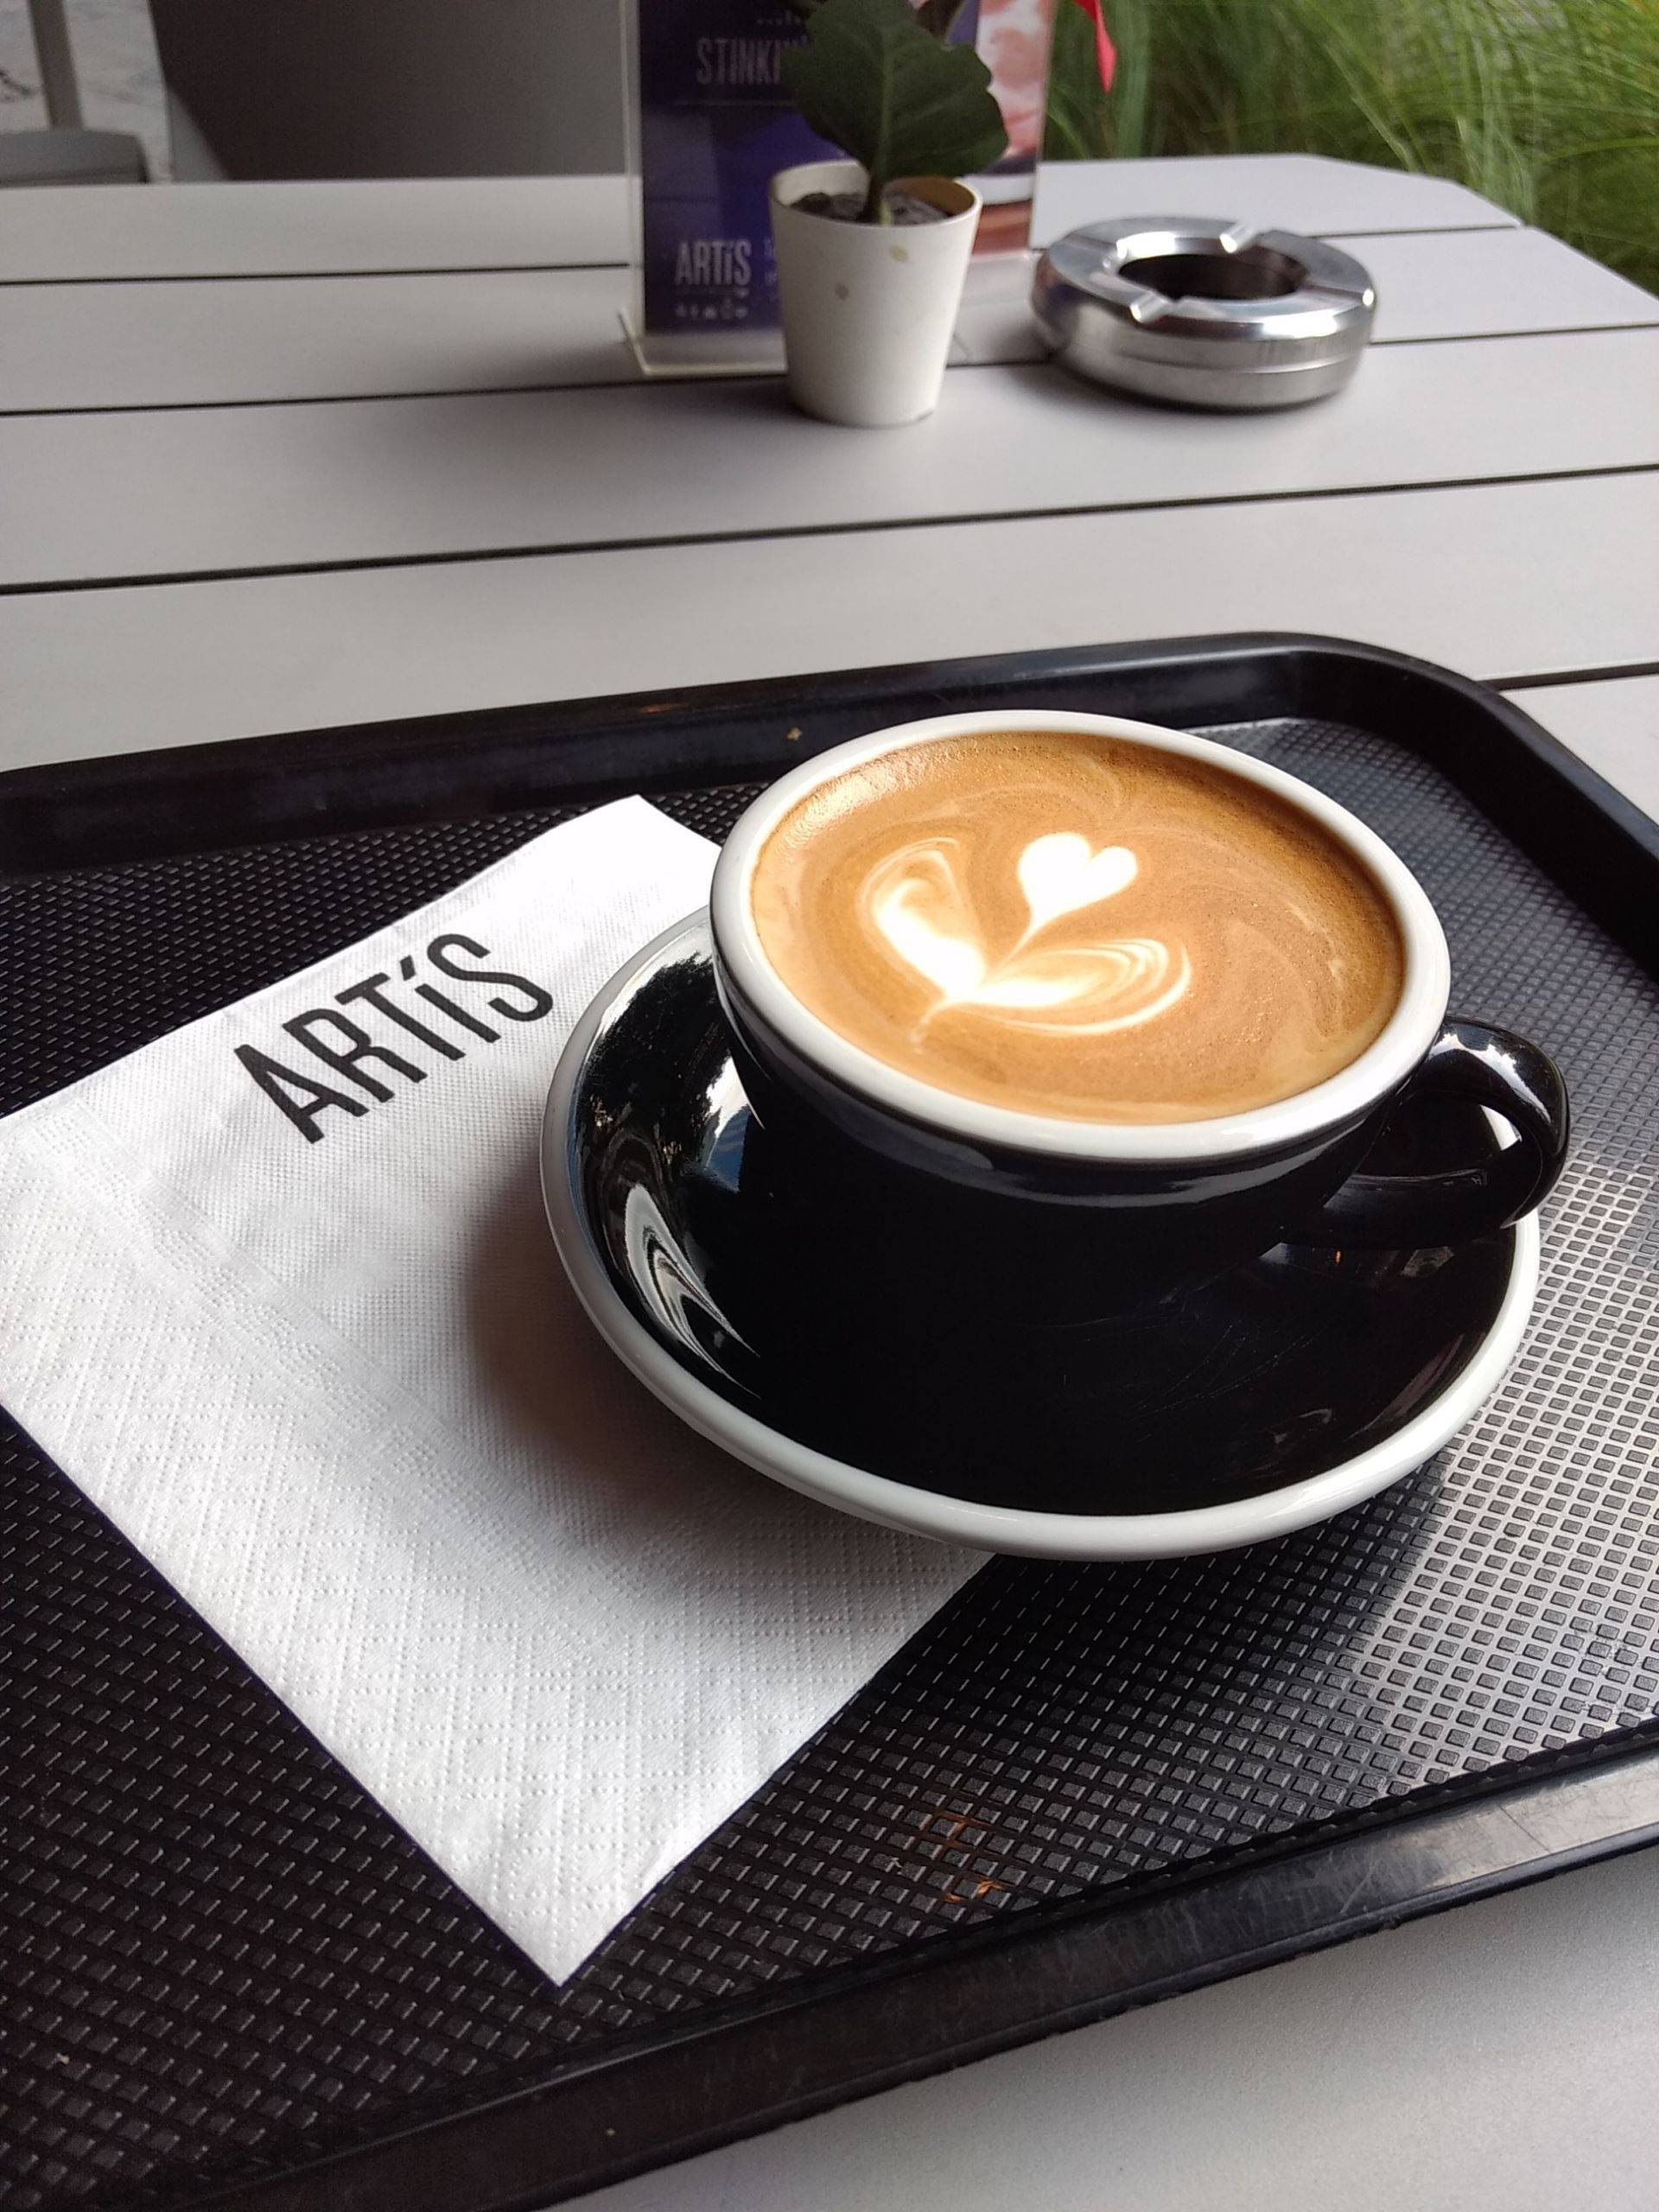 Artis Coffee Bangkok